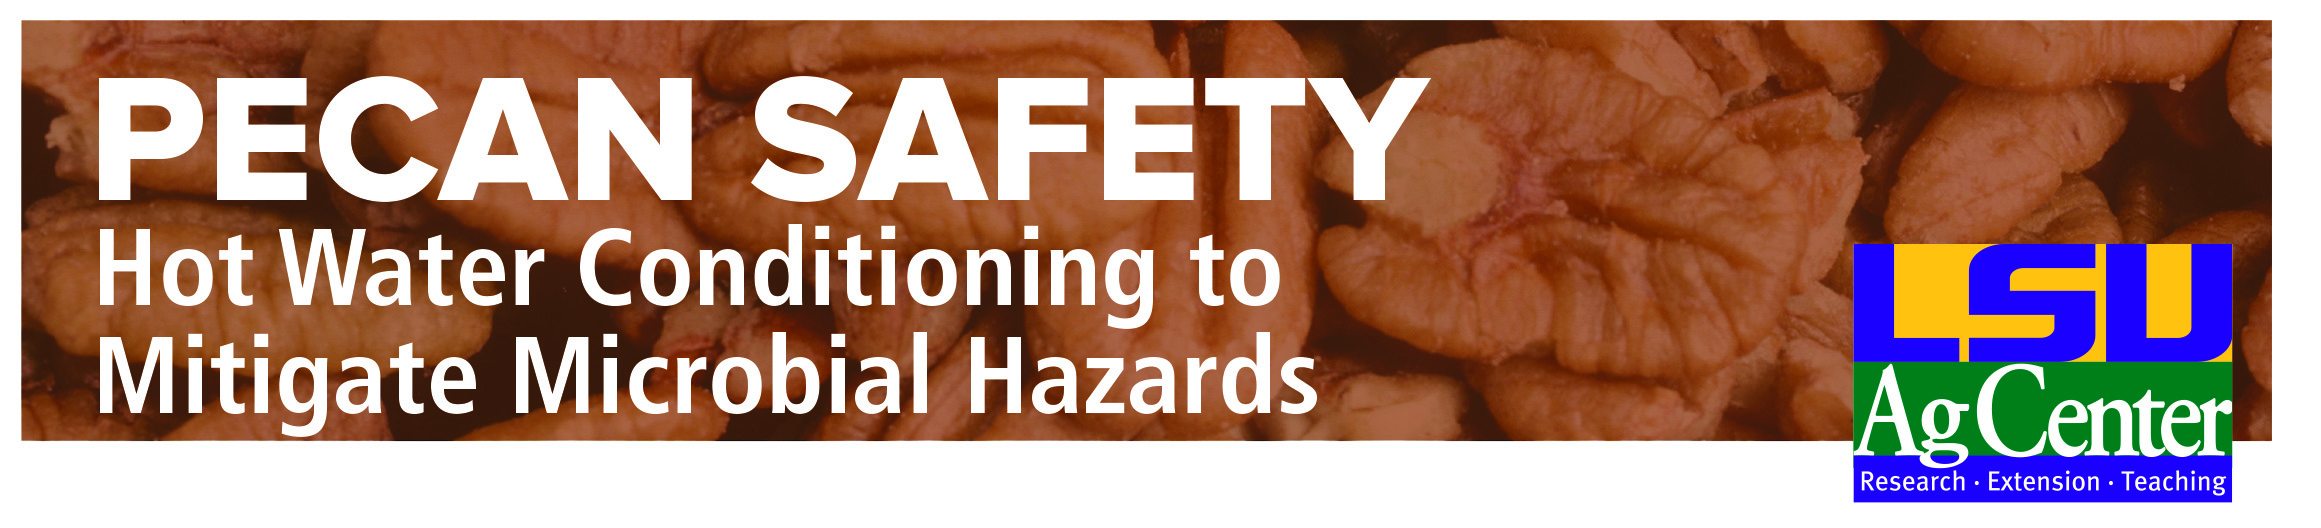 3642 Pecan Safety header_web.jpg thumbnail